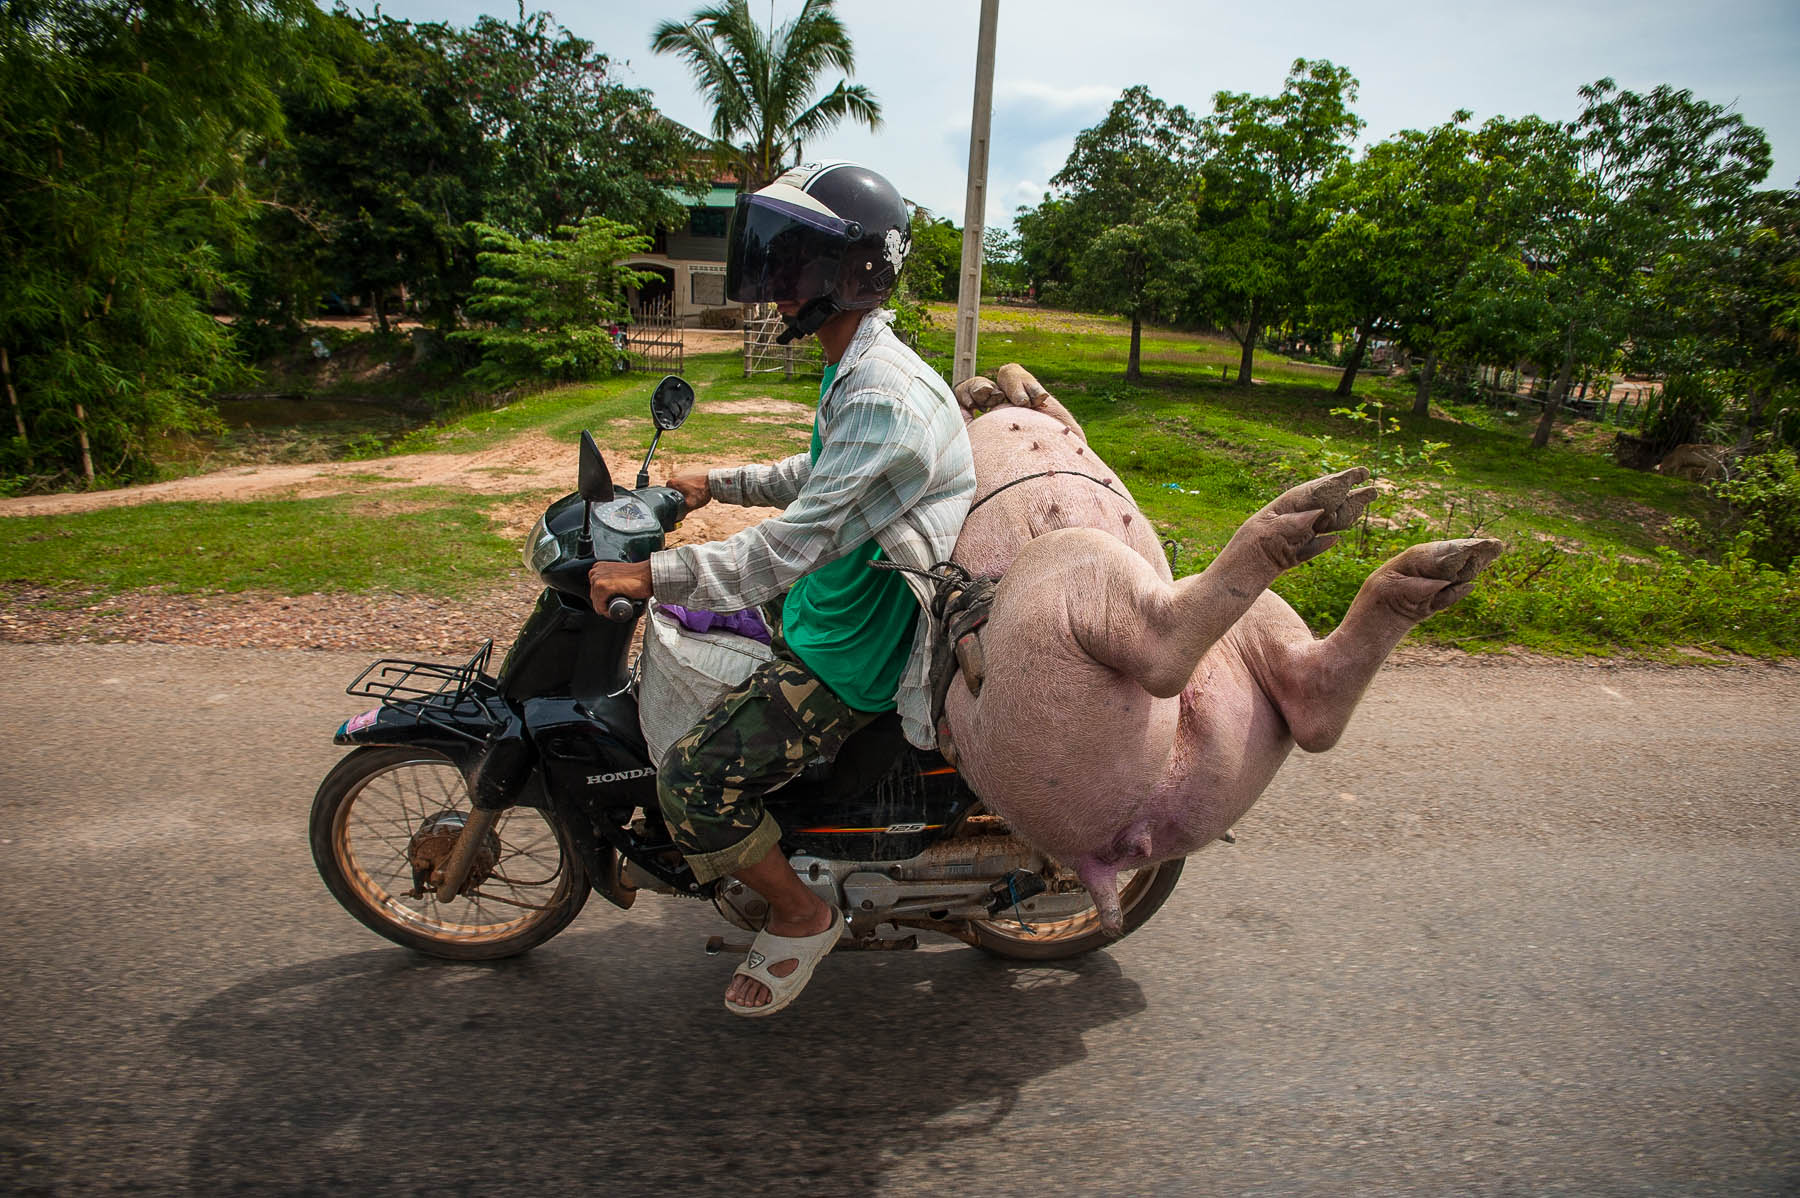 Pig riding on back of motor scooter, Phnom Penh Cambodia